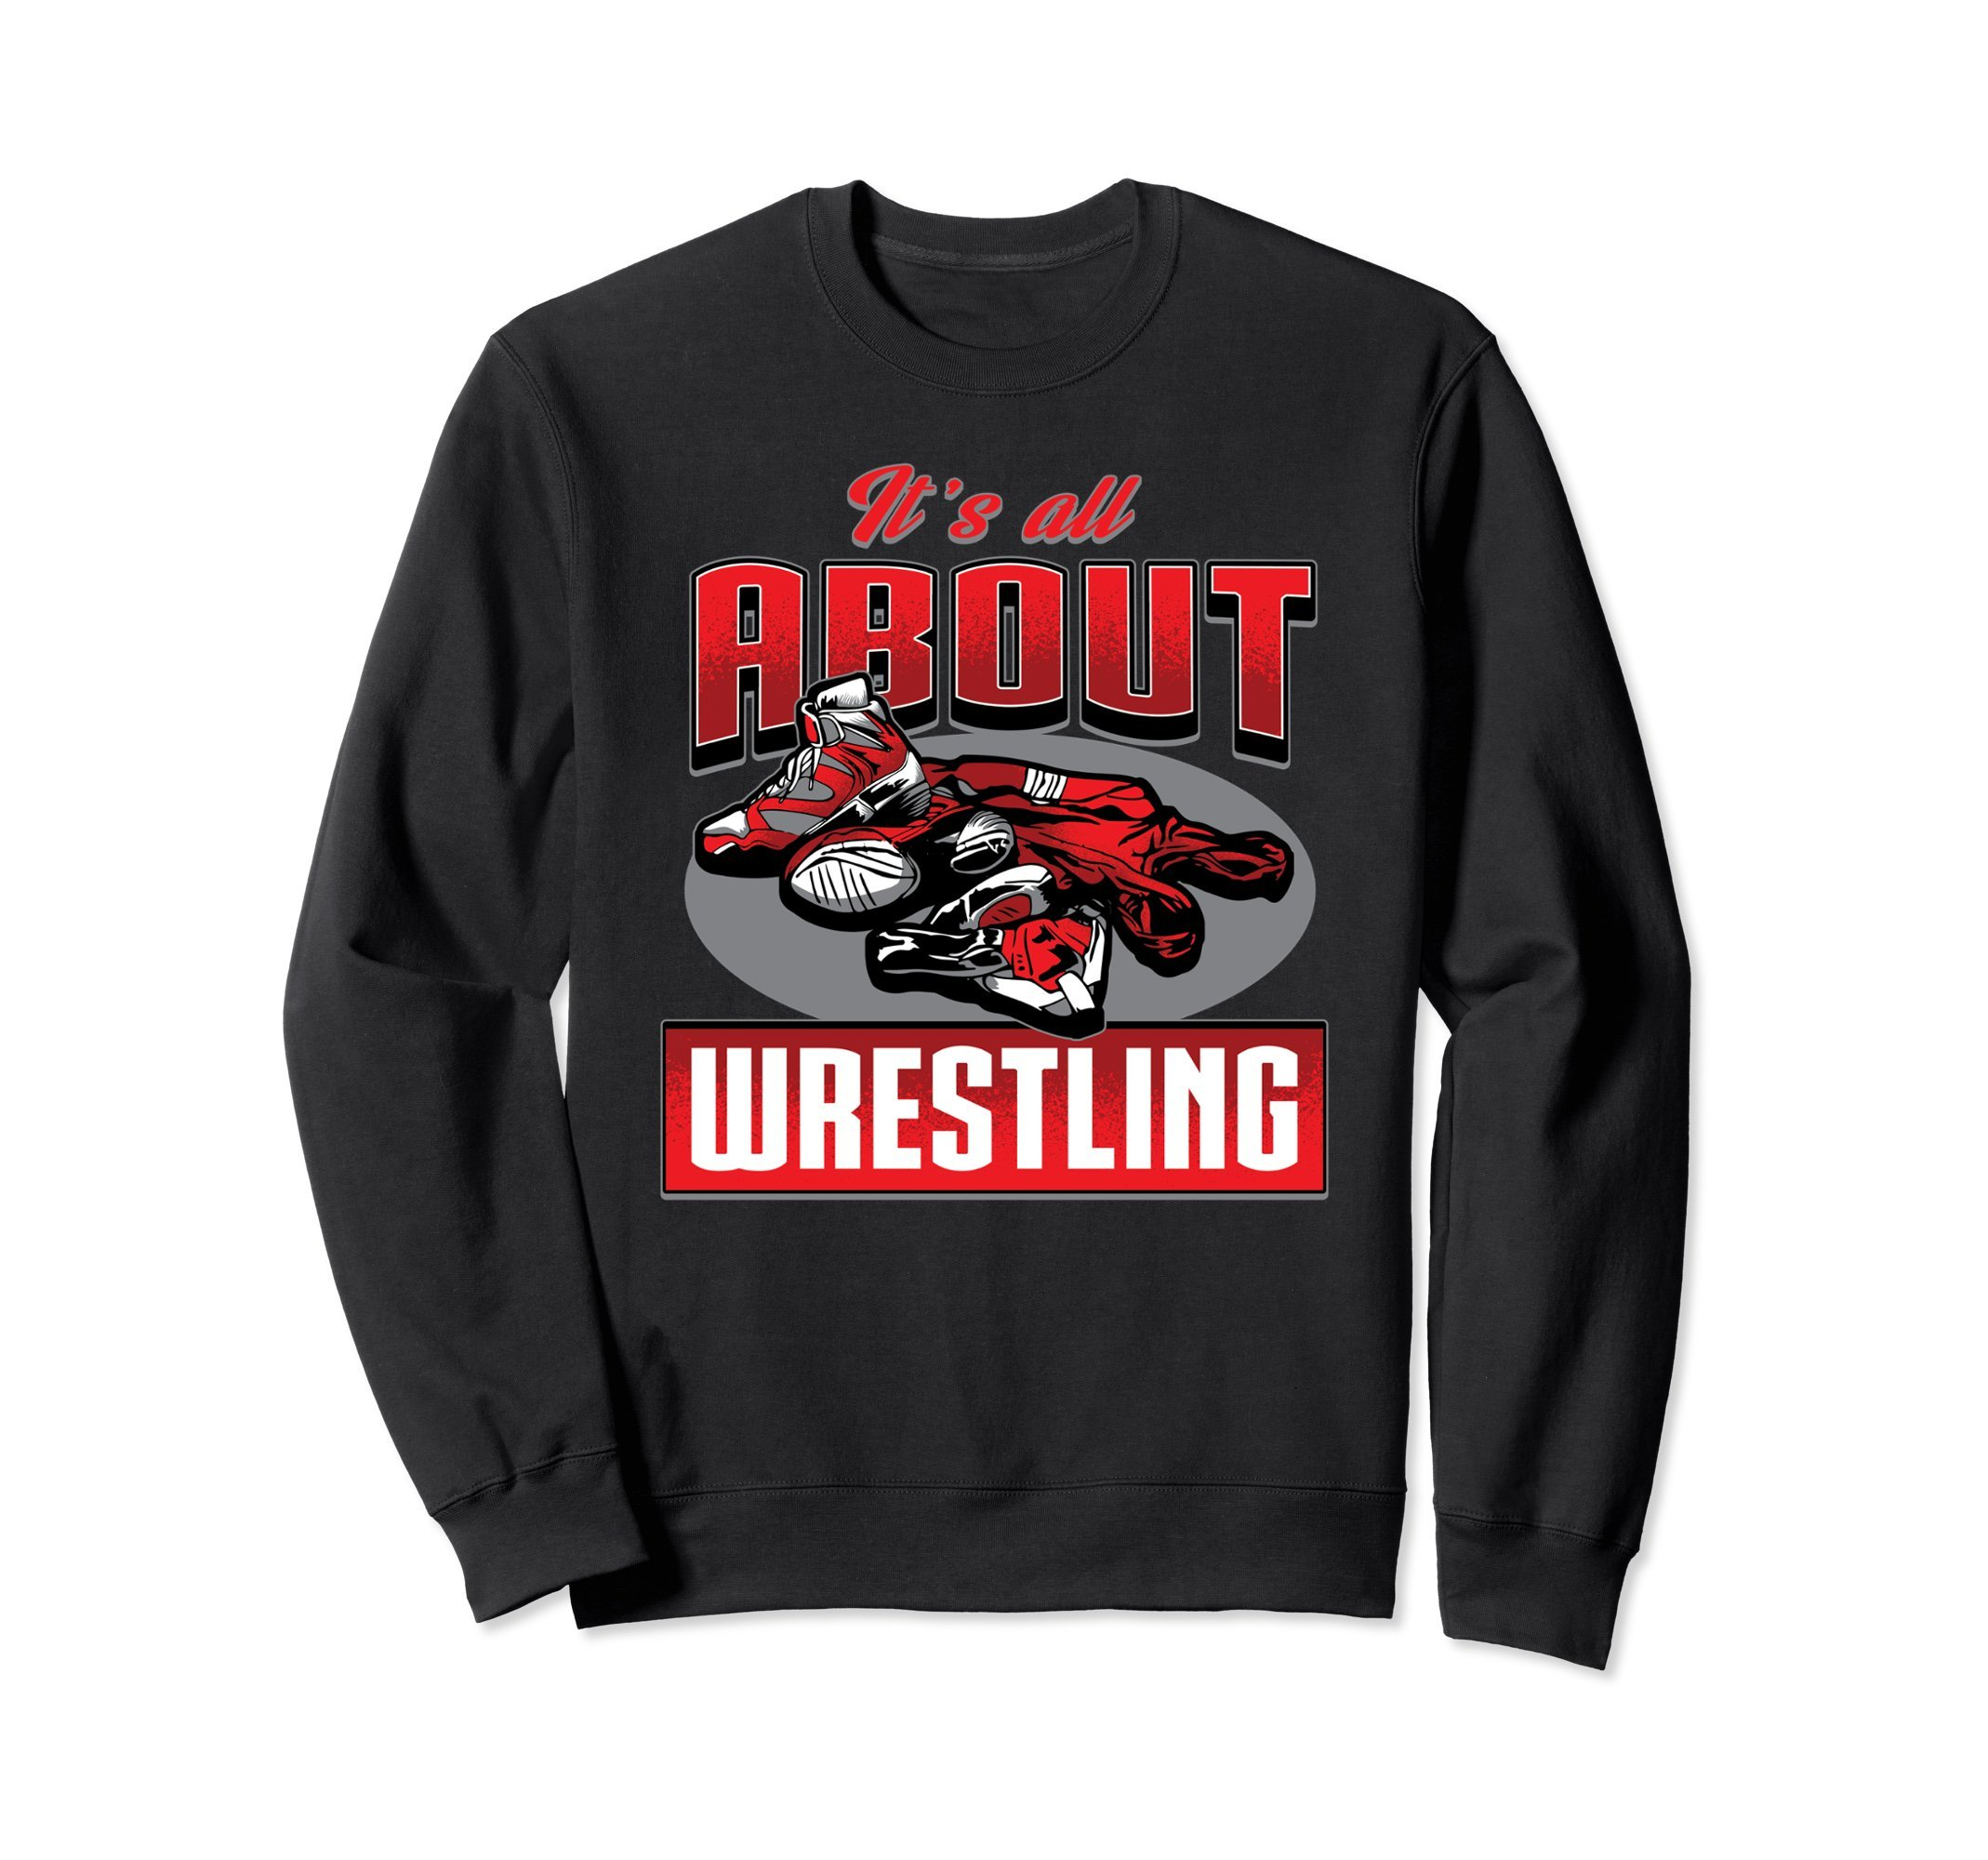 Unisex Wrestling Sweatshirt - It's All About Wrestling Sweater Medium Black by Wrestling Shirt by Crush Retro